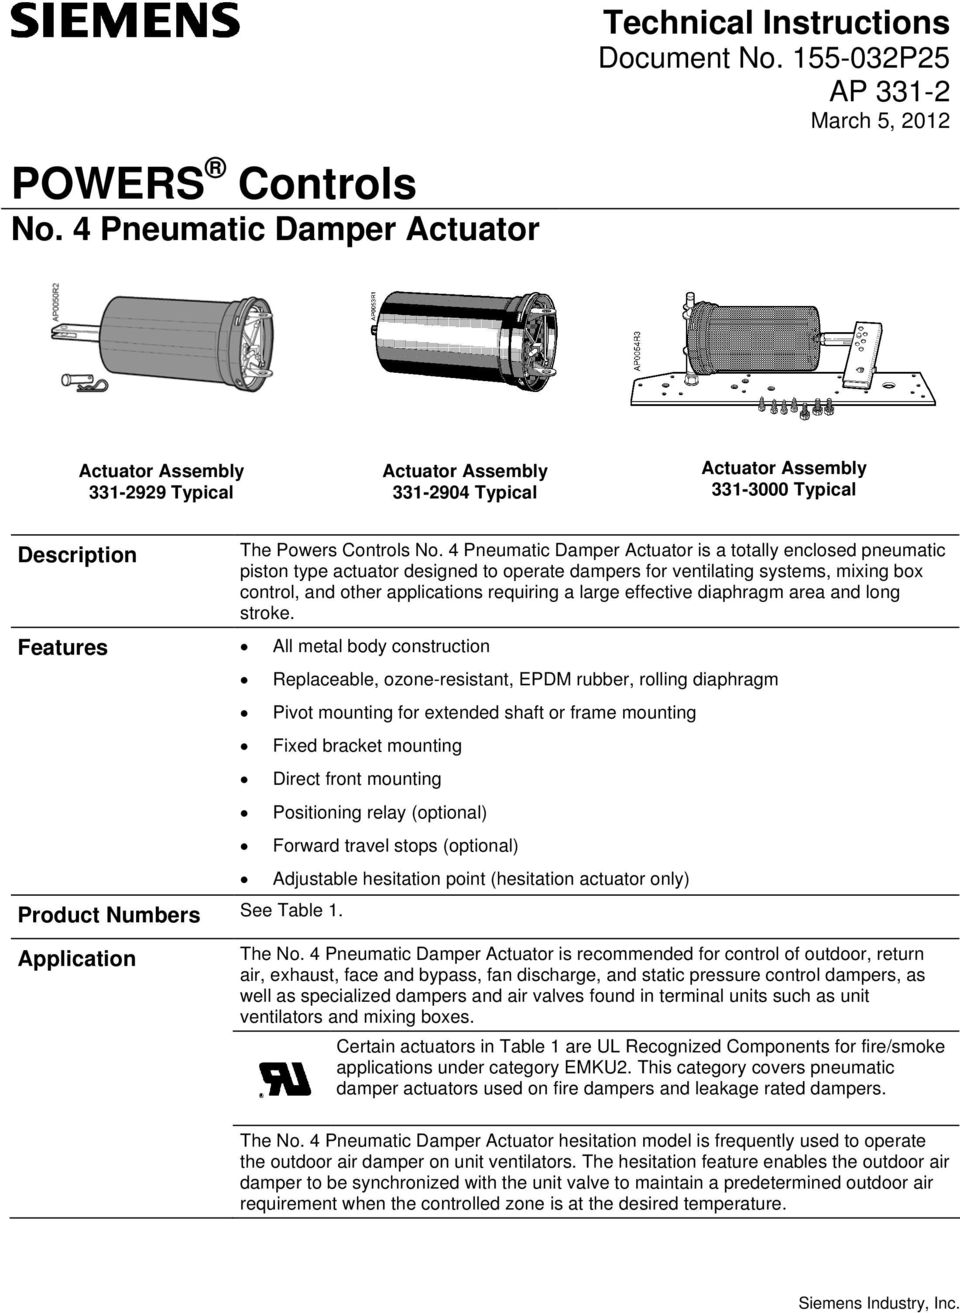 4 Pneumatic Damper Actuator is a totally enclosed pneumatic piston type actuator designed to operate dampers for ventilating systems, mixing box control, and other applications requiring a large